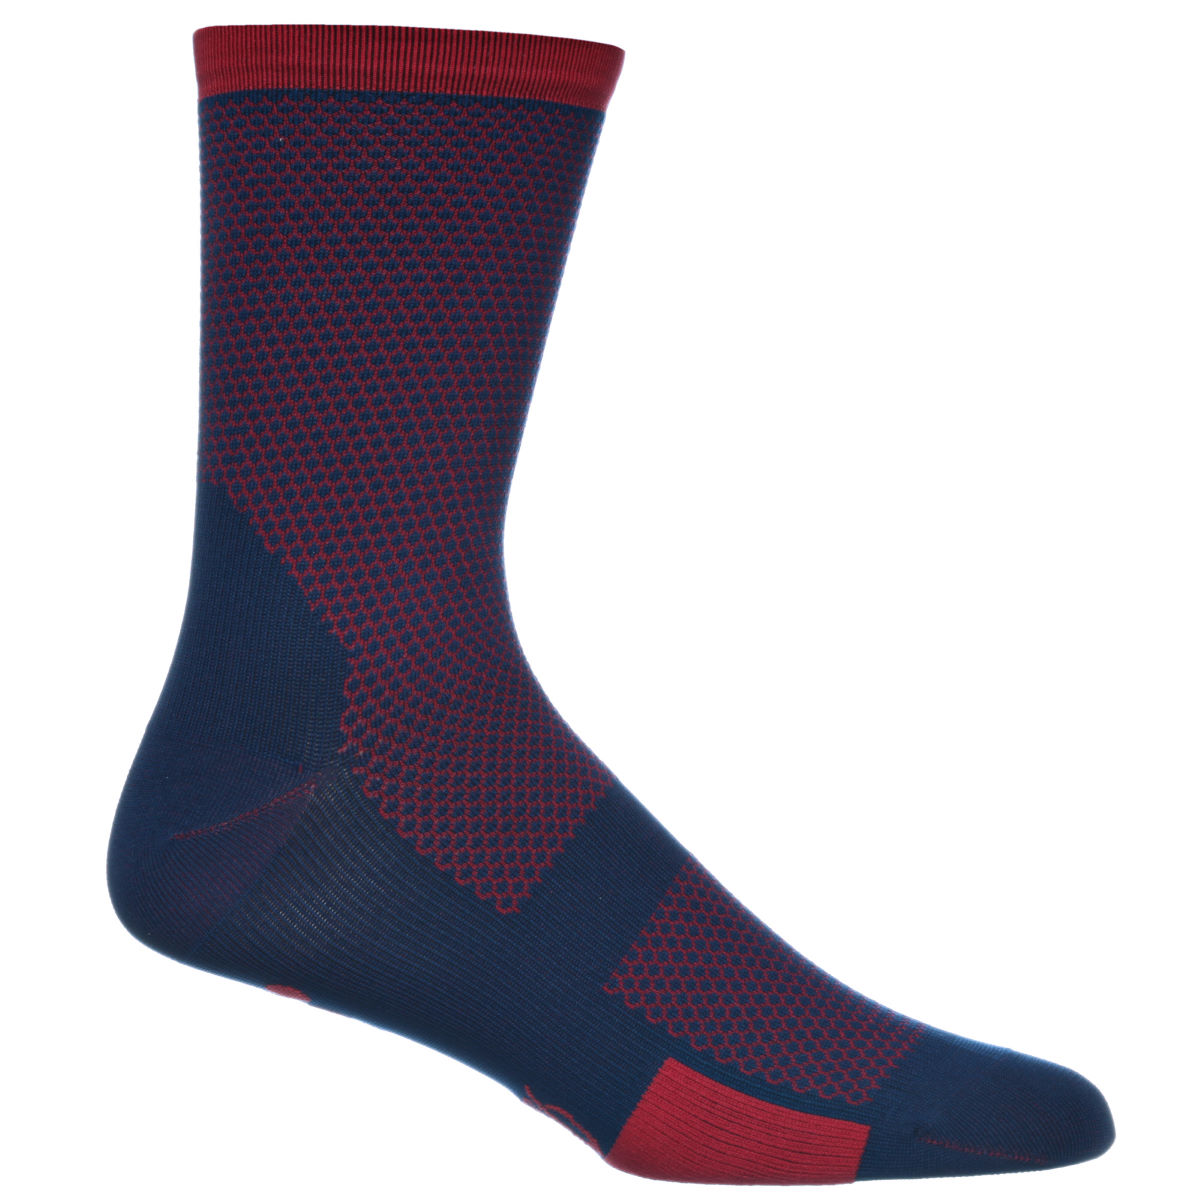 Image of Chaussettes Isadore Albula Climbers - S/M Blue/Red | Chaussettes